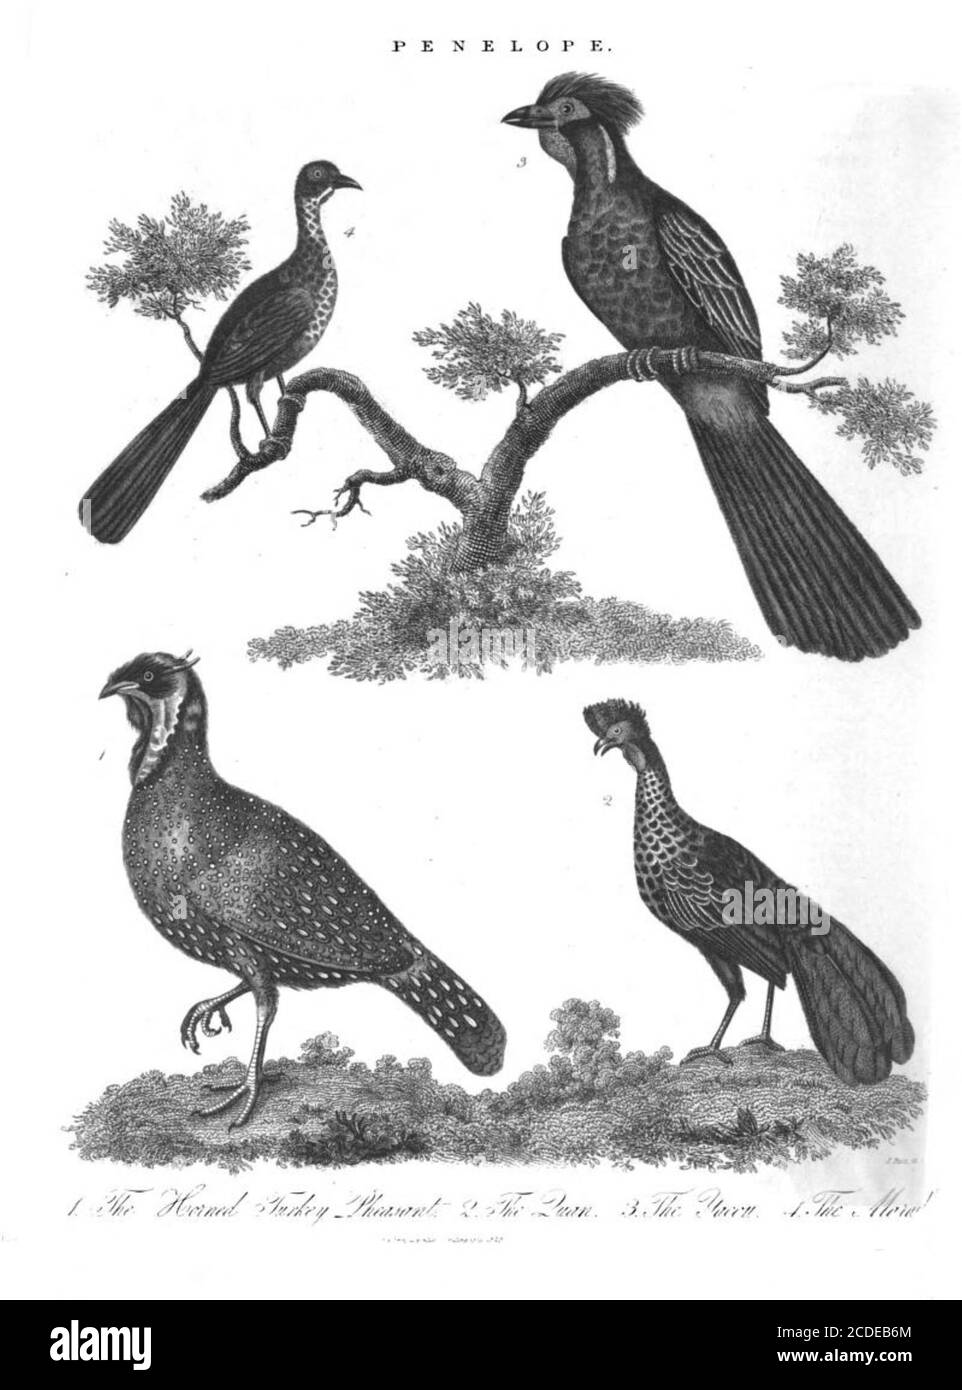 4 Penelope species of Turkey Pheasants [Penelope is a bird genus in the family Cracidae consisting of a number of large turkey-like arboreal species, the typical guans.] Copperplate engraving From the Encyclopaedia Londinensis or, Universal dictionary of arts, sciences, and literature; Volume XIX;  Edited by Wilkes, John. Published in London in 1823 Stock Photo